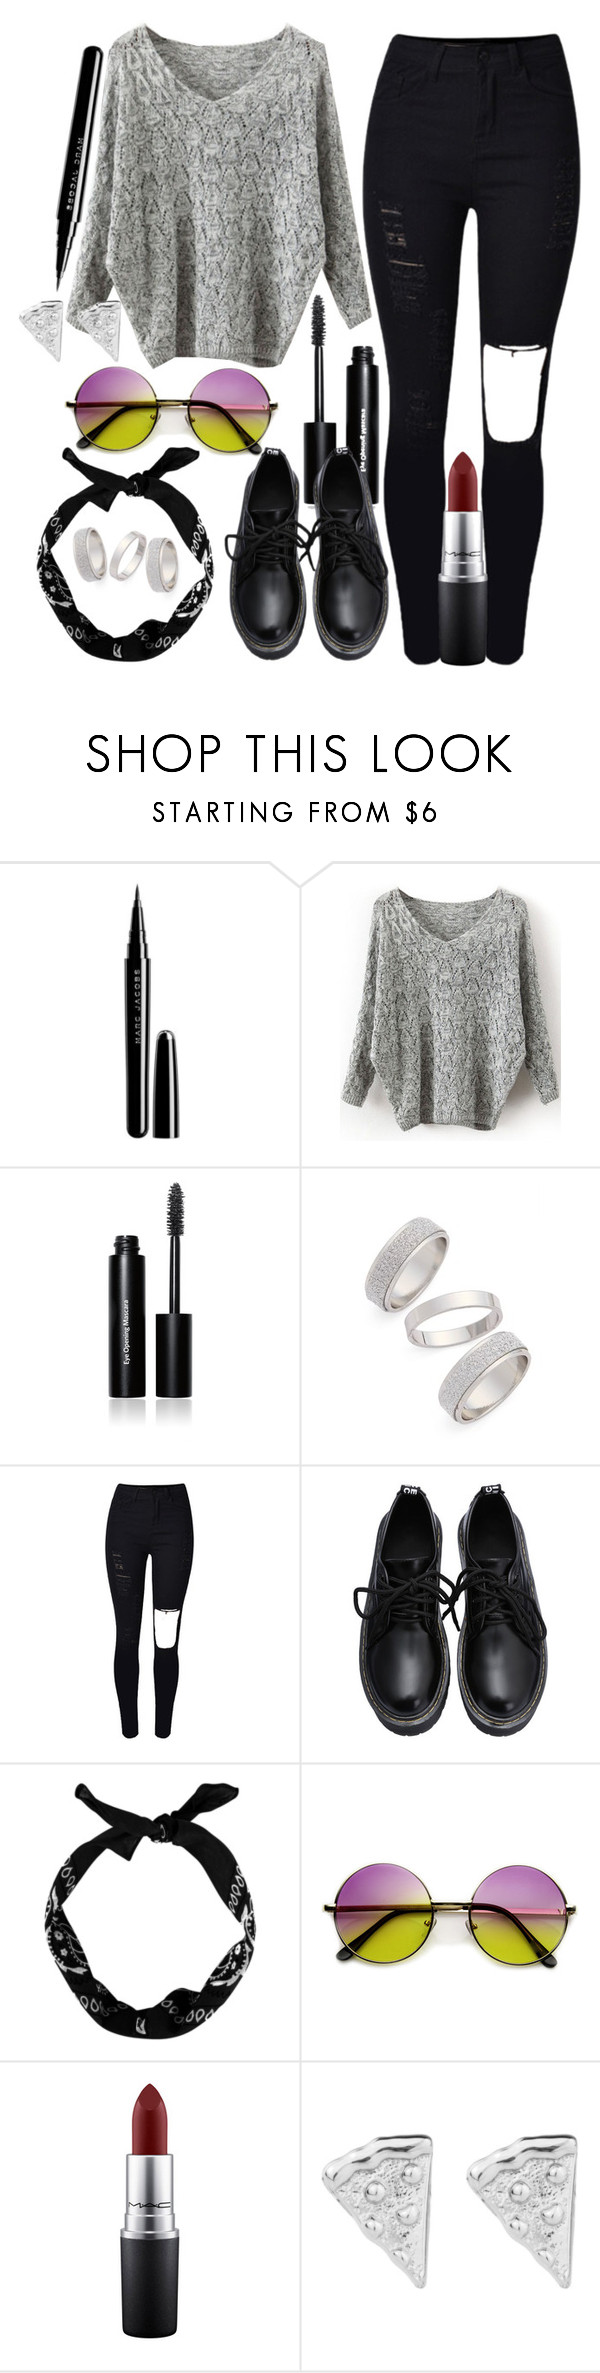 """"" by maiiira-nair ❤ liked on Polyvore featuring Marc Jacobs, Bobbi Brown Cosmetics, Topshop, MAC Cosmetics, women's clothing, women, female, woman, misses and juniors"